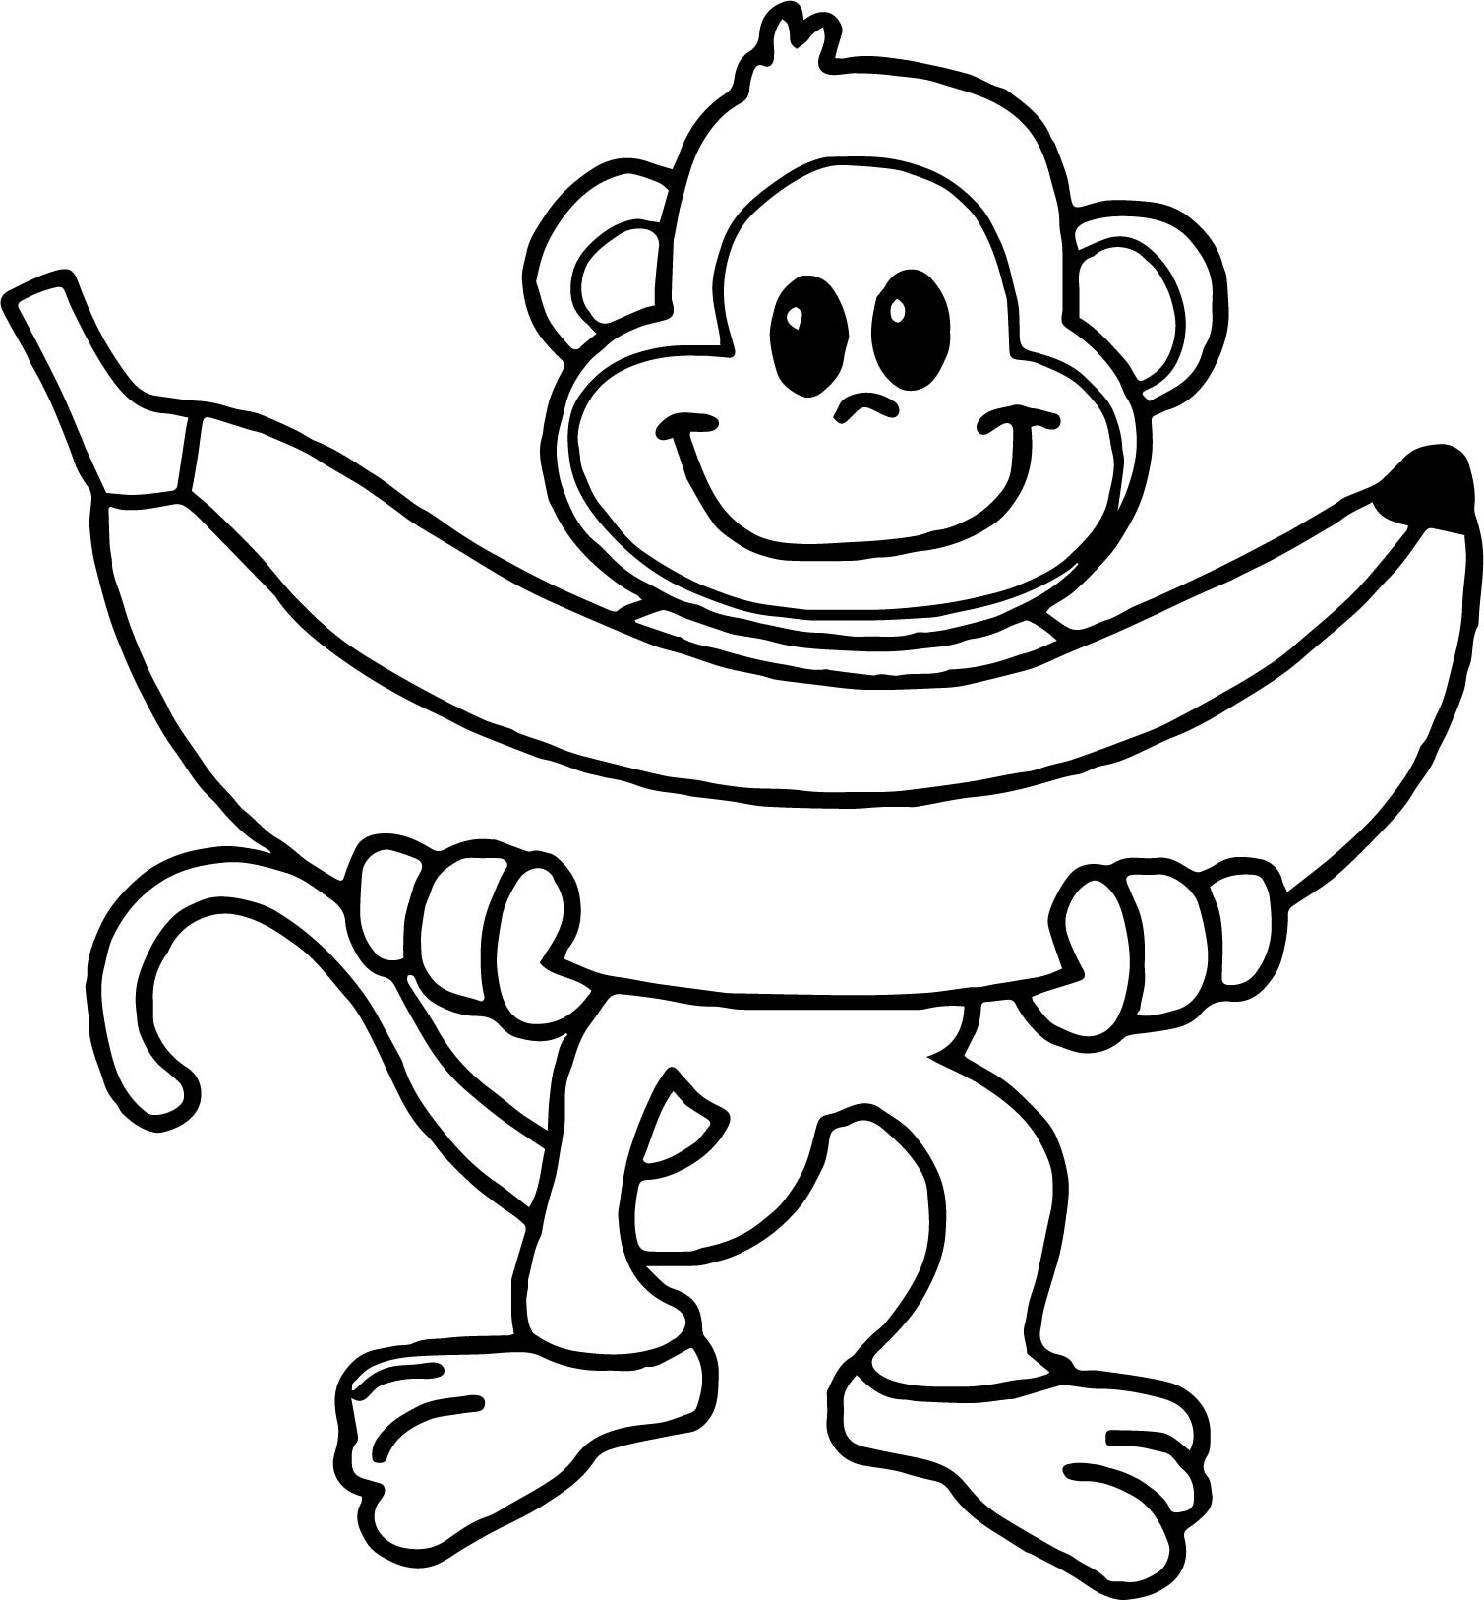 colouring pictures of monkeys coloring pages of monkeys printable activity shelter pictures monkeys of colouring